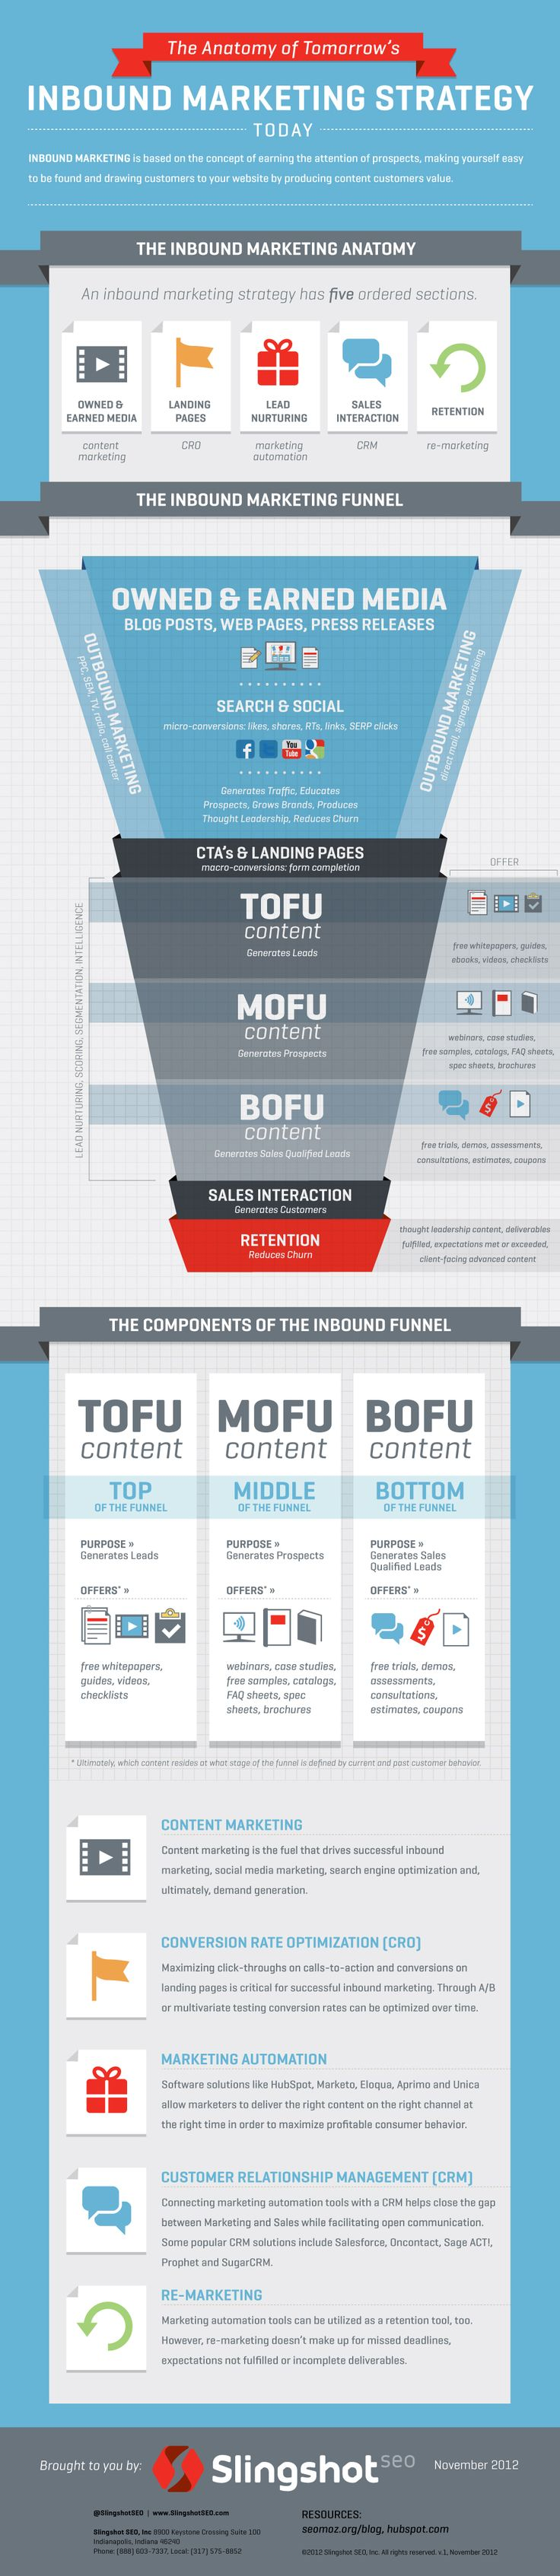 ¿Qué son TOFU, MOFU y BOFU en tu estrategia de Inbound Marketing?